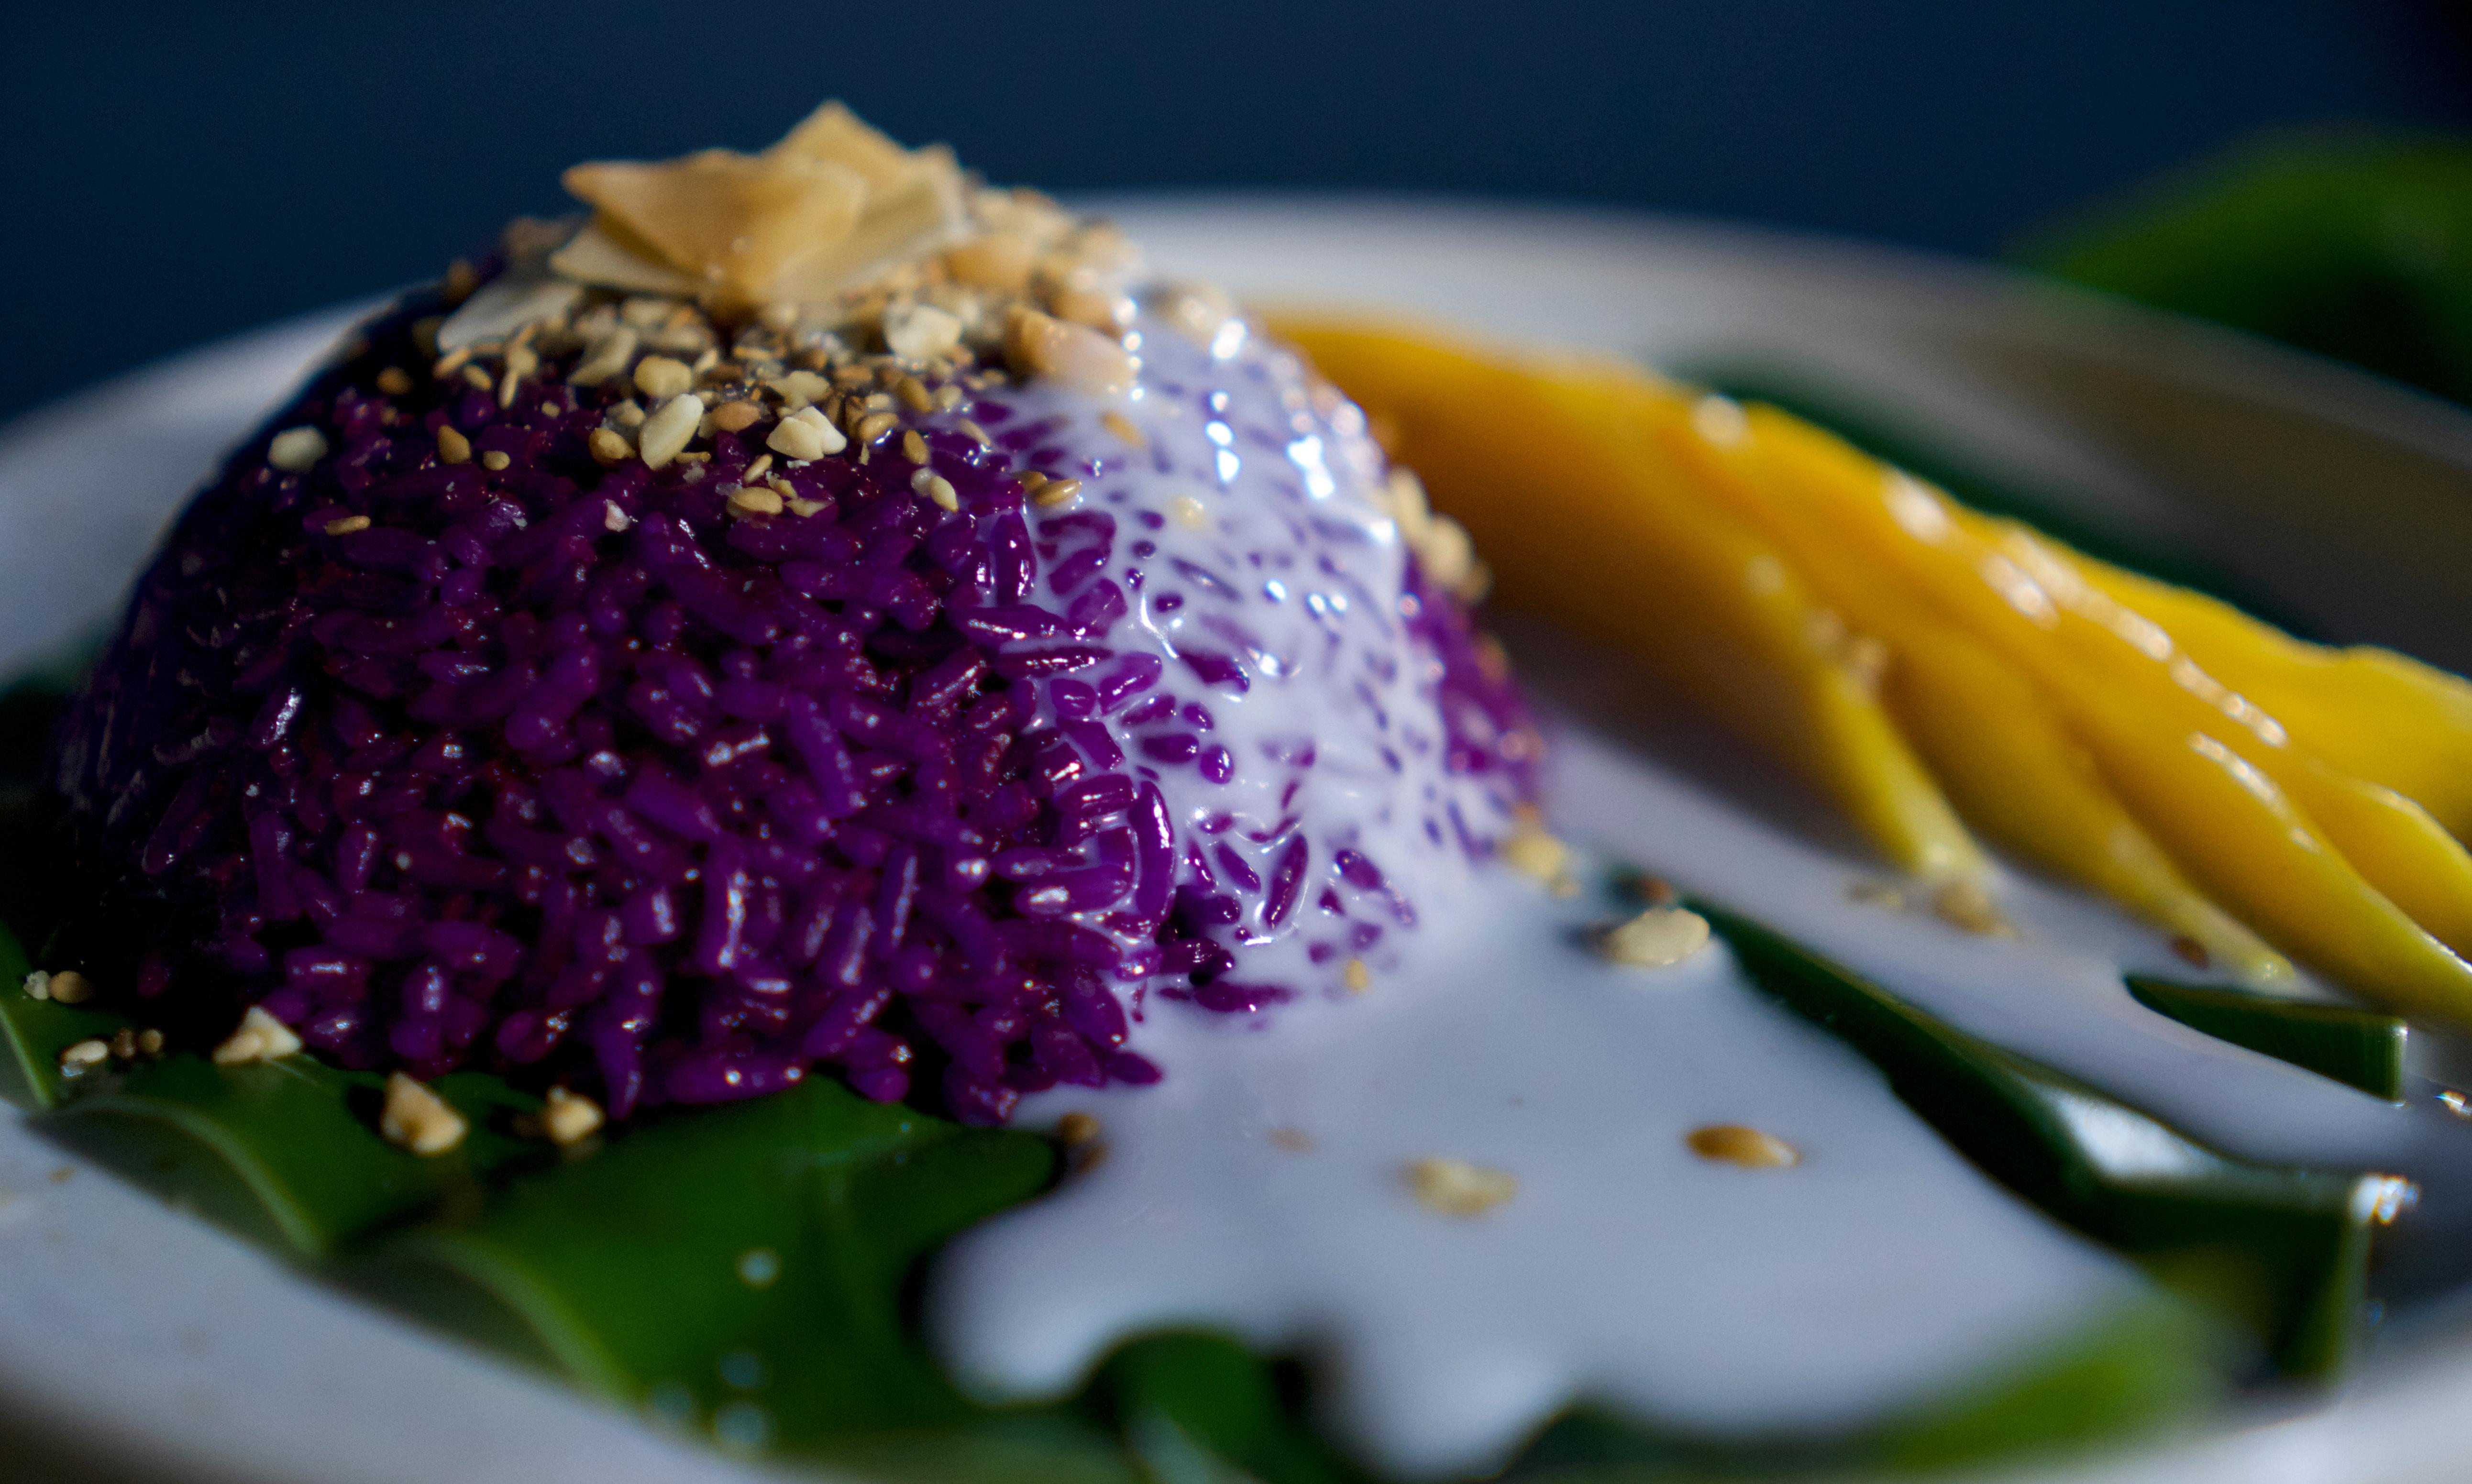 Magenta sticky rice and pillowed noodles: a three-course dinner from Luke Nguyen